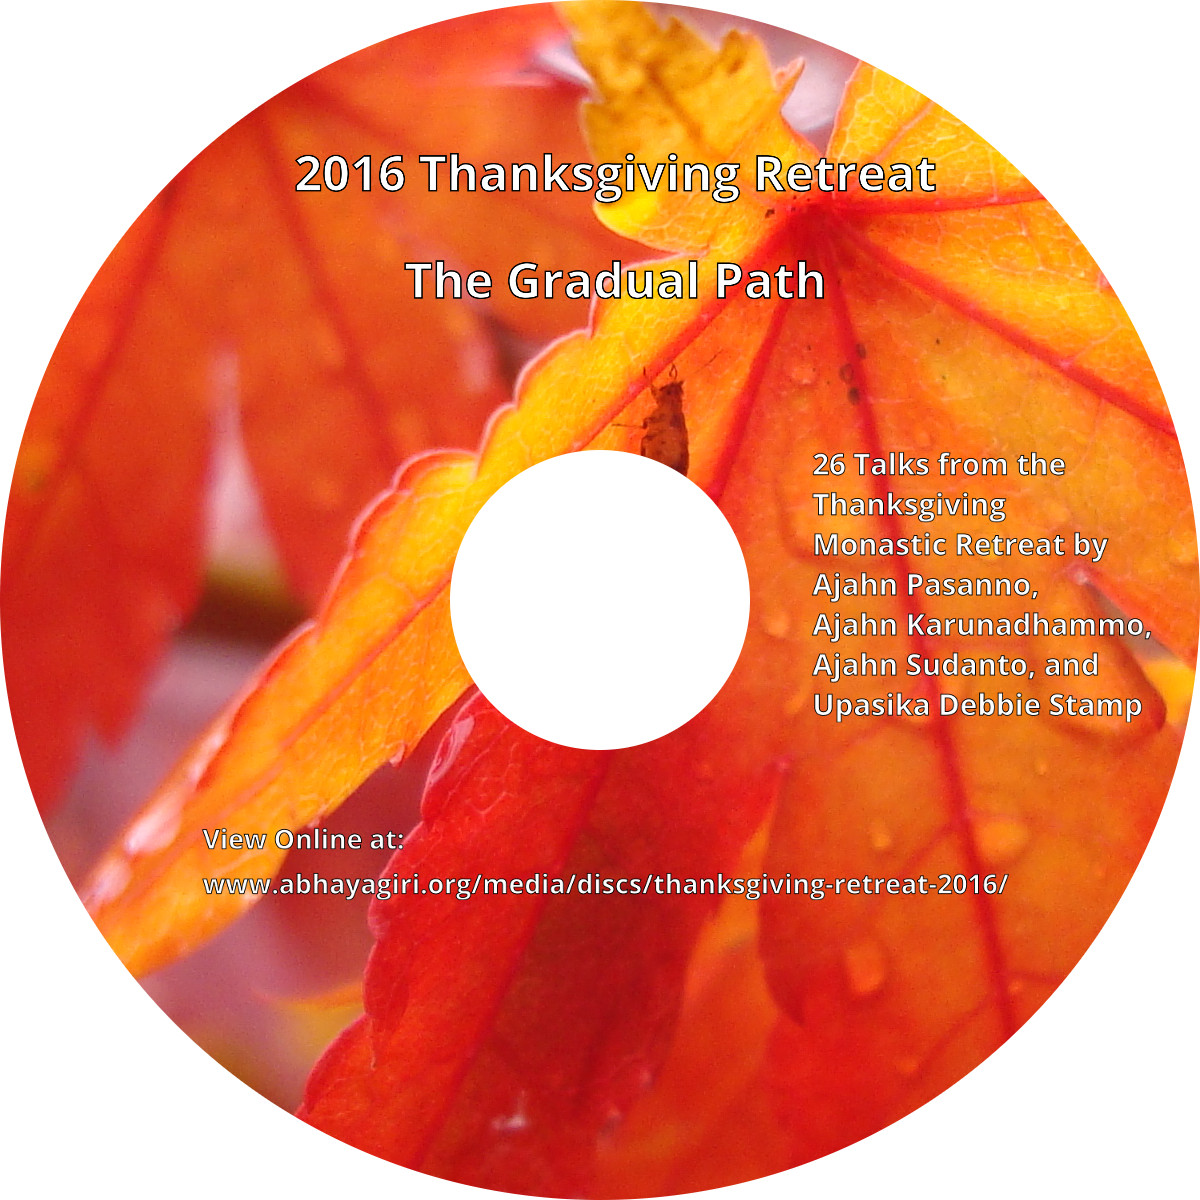 The Gradual Path-2016 Abhayagiri Thanksgiving Monastic Retreat